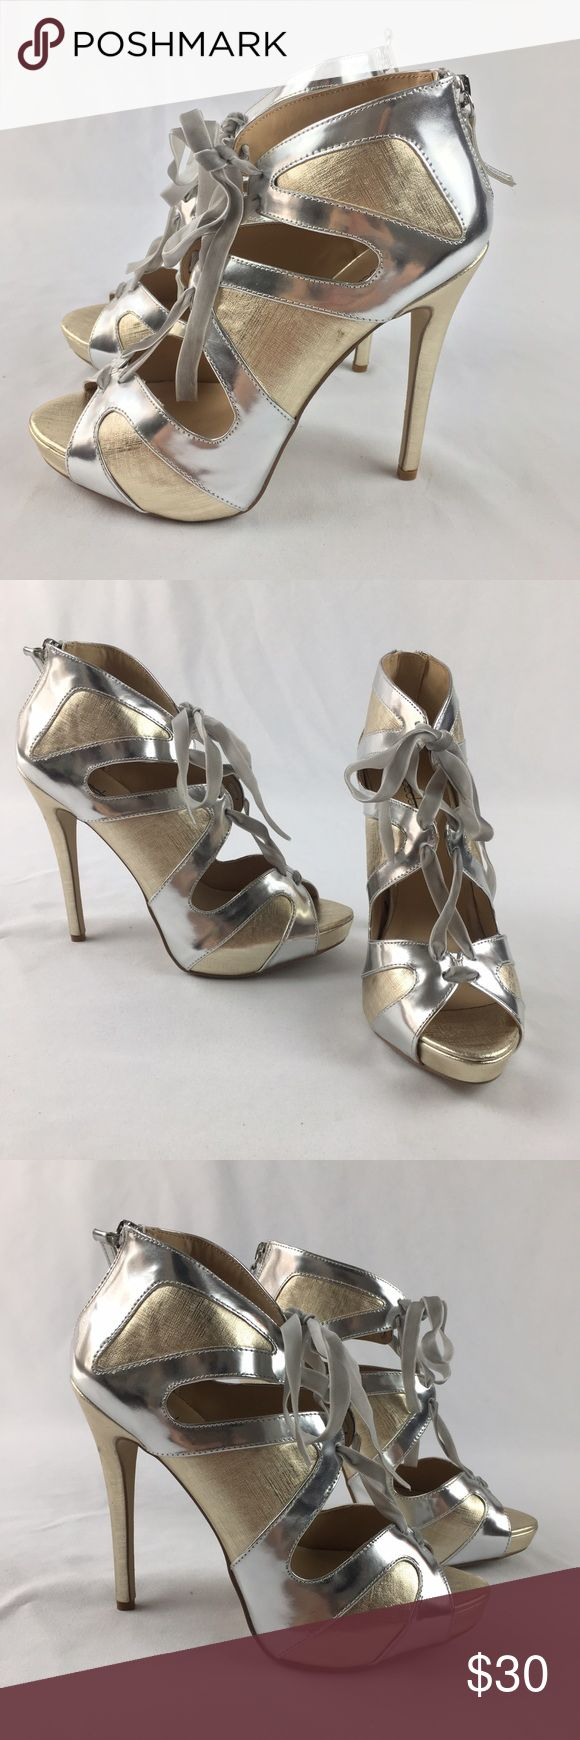 New Shoe Dazzle Kecia Gold & Silver Lace Up Heels New Shoe Dazzle Kecia Gold & Silver Lace Up Heels. Peep toe. Laces up the front. Beautiful shoes. A few minor scuffs as pictured (reflected in pricing) New, never worn. Size 9. With 5 inch heels Shoe Dazzle Shoes Heels